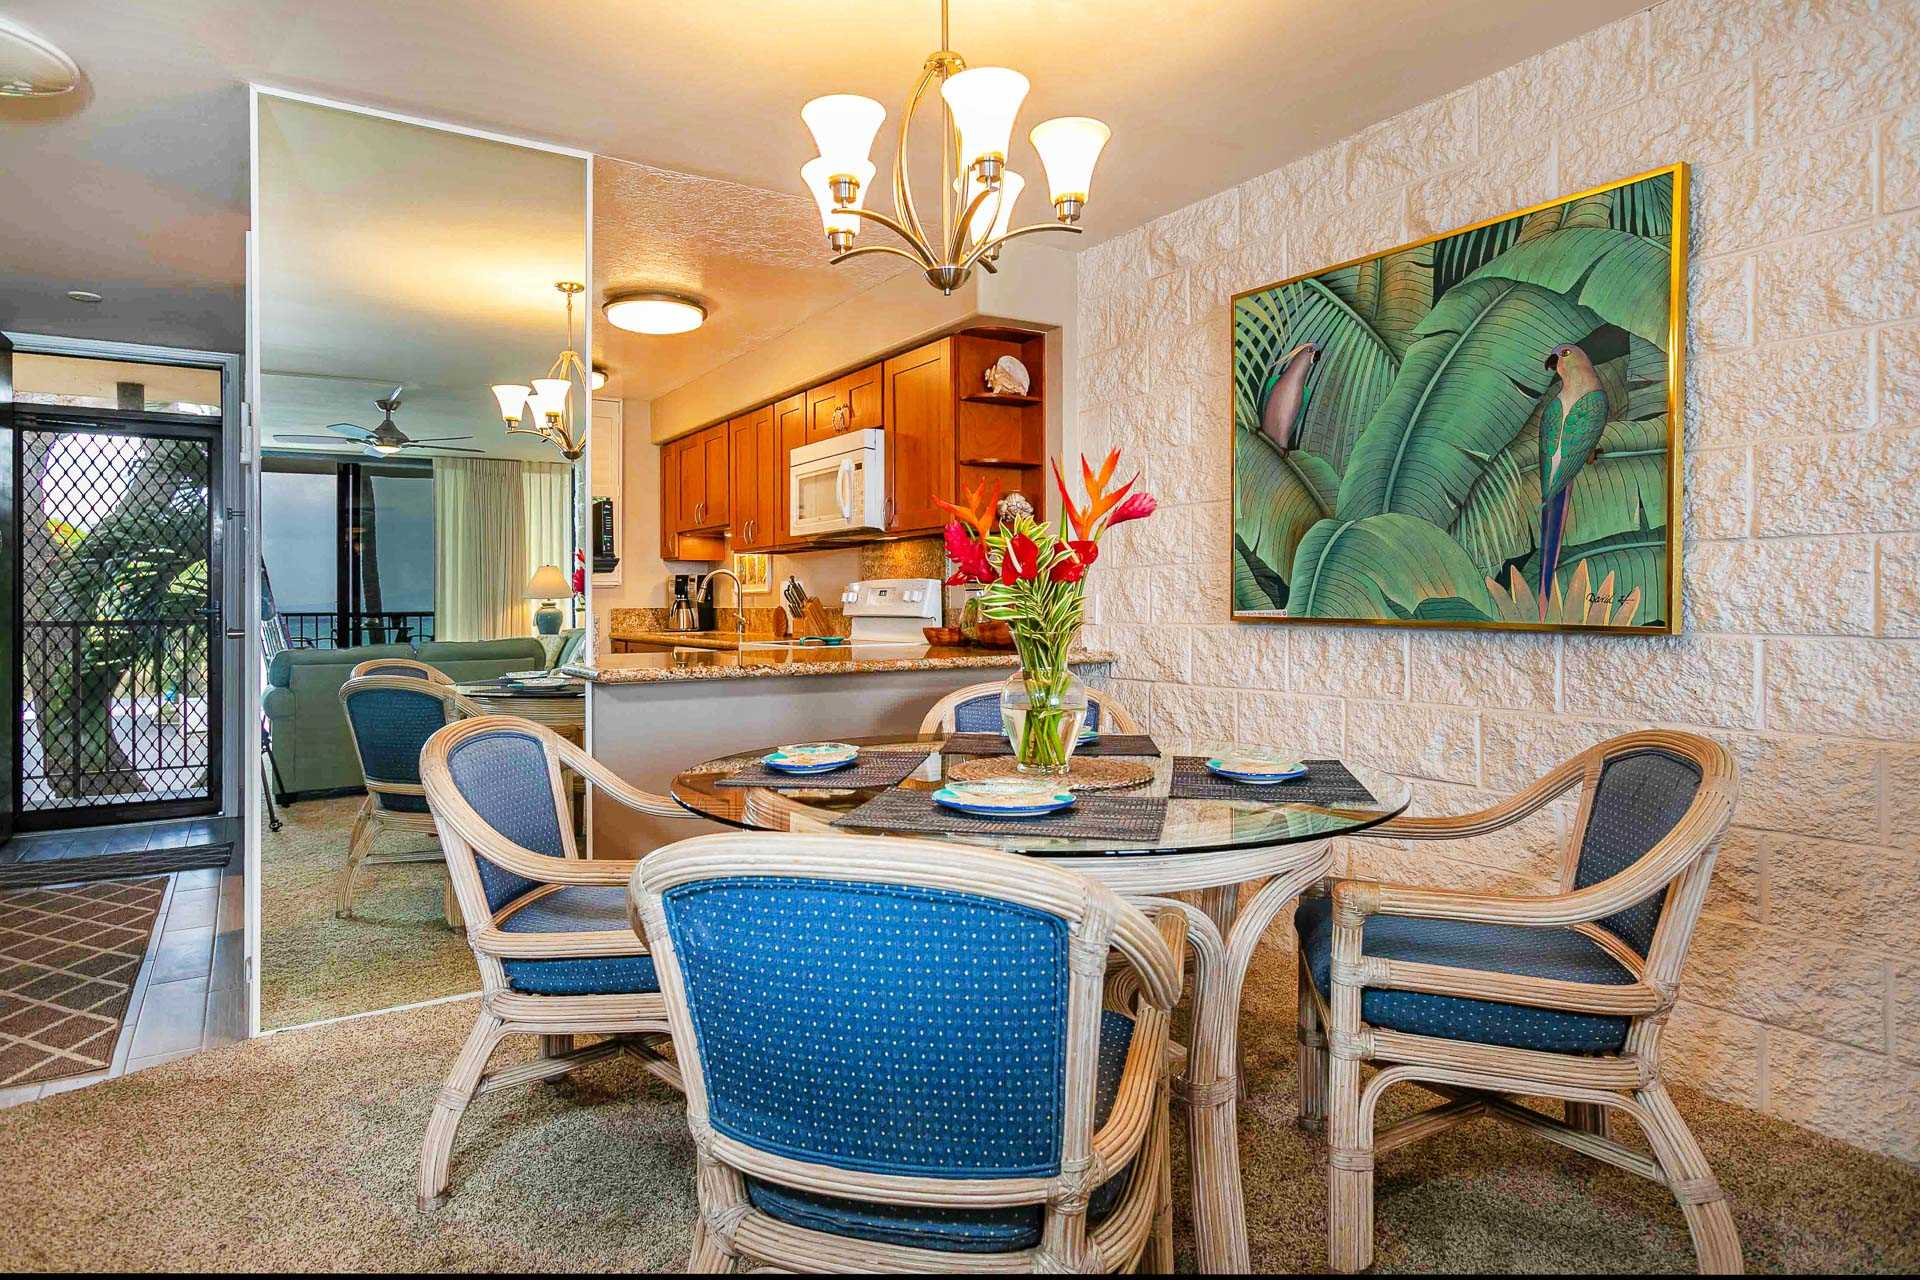 Dining area and kitchen have great ocean views too!